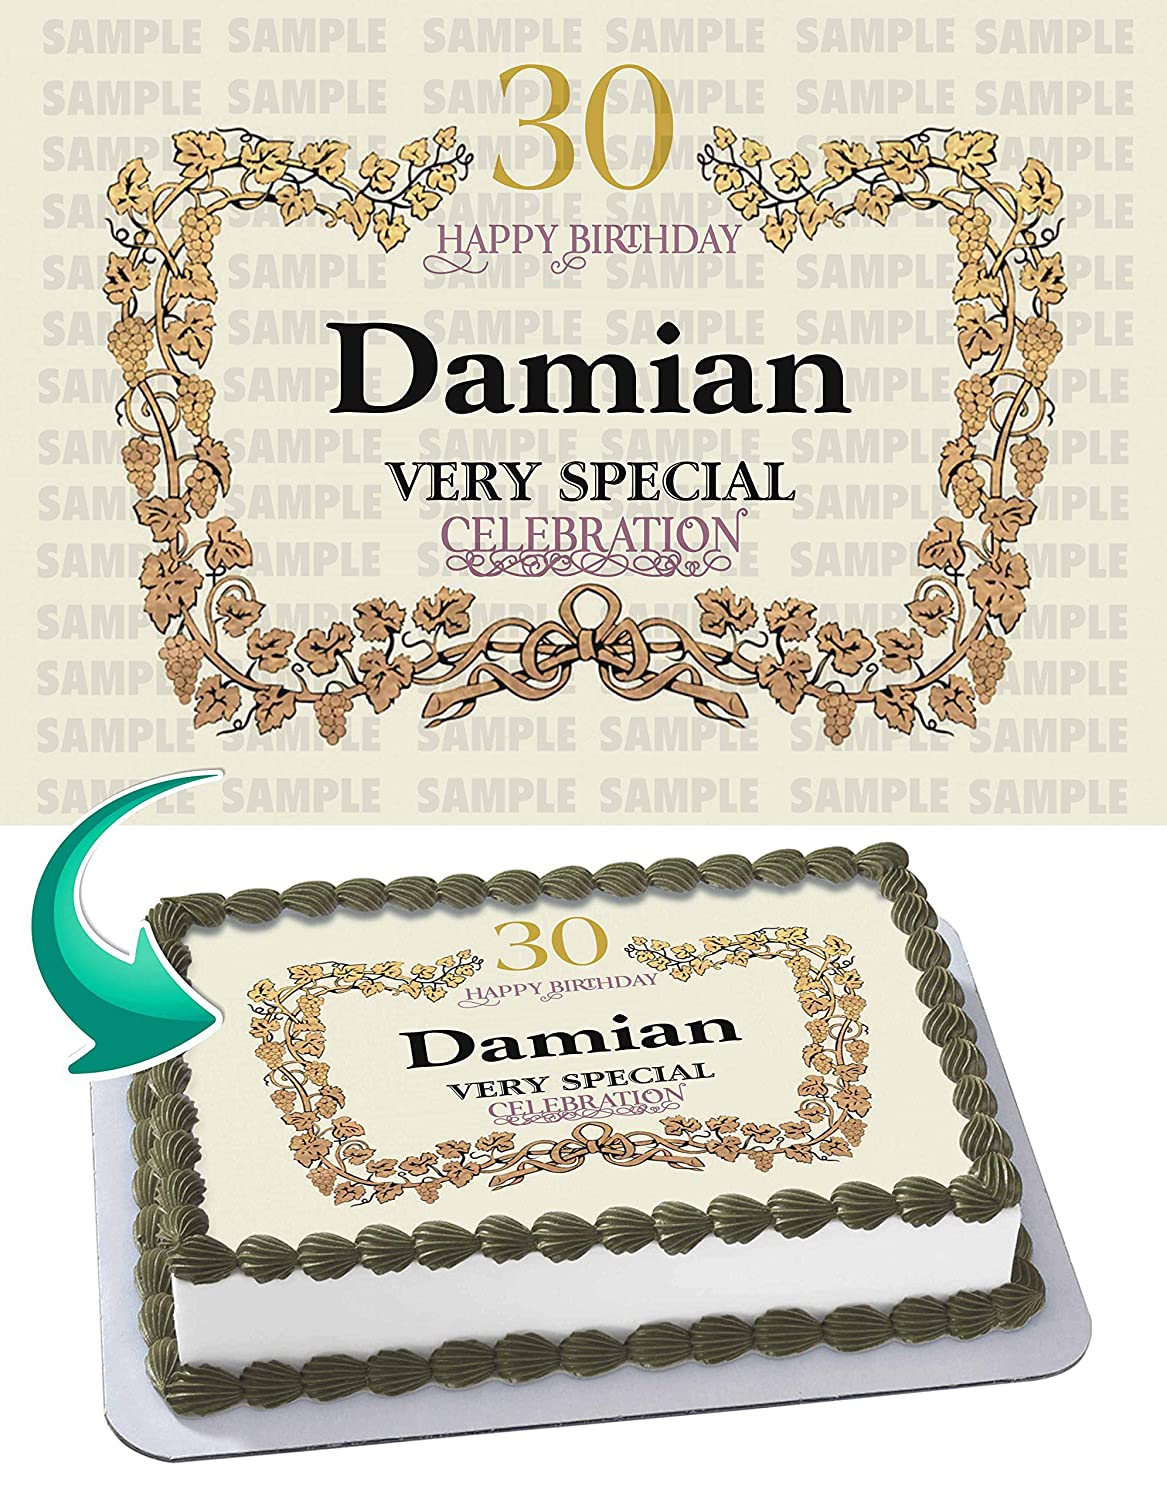 Hennessy label edible cake image topper personalized birthday 1 4 sheet custom sheet party